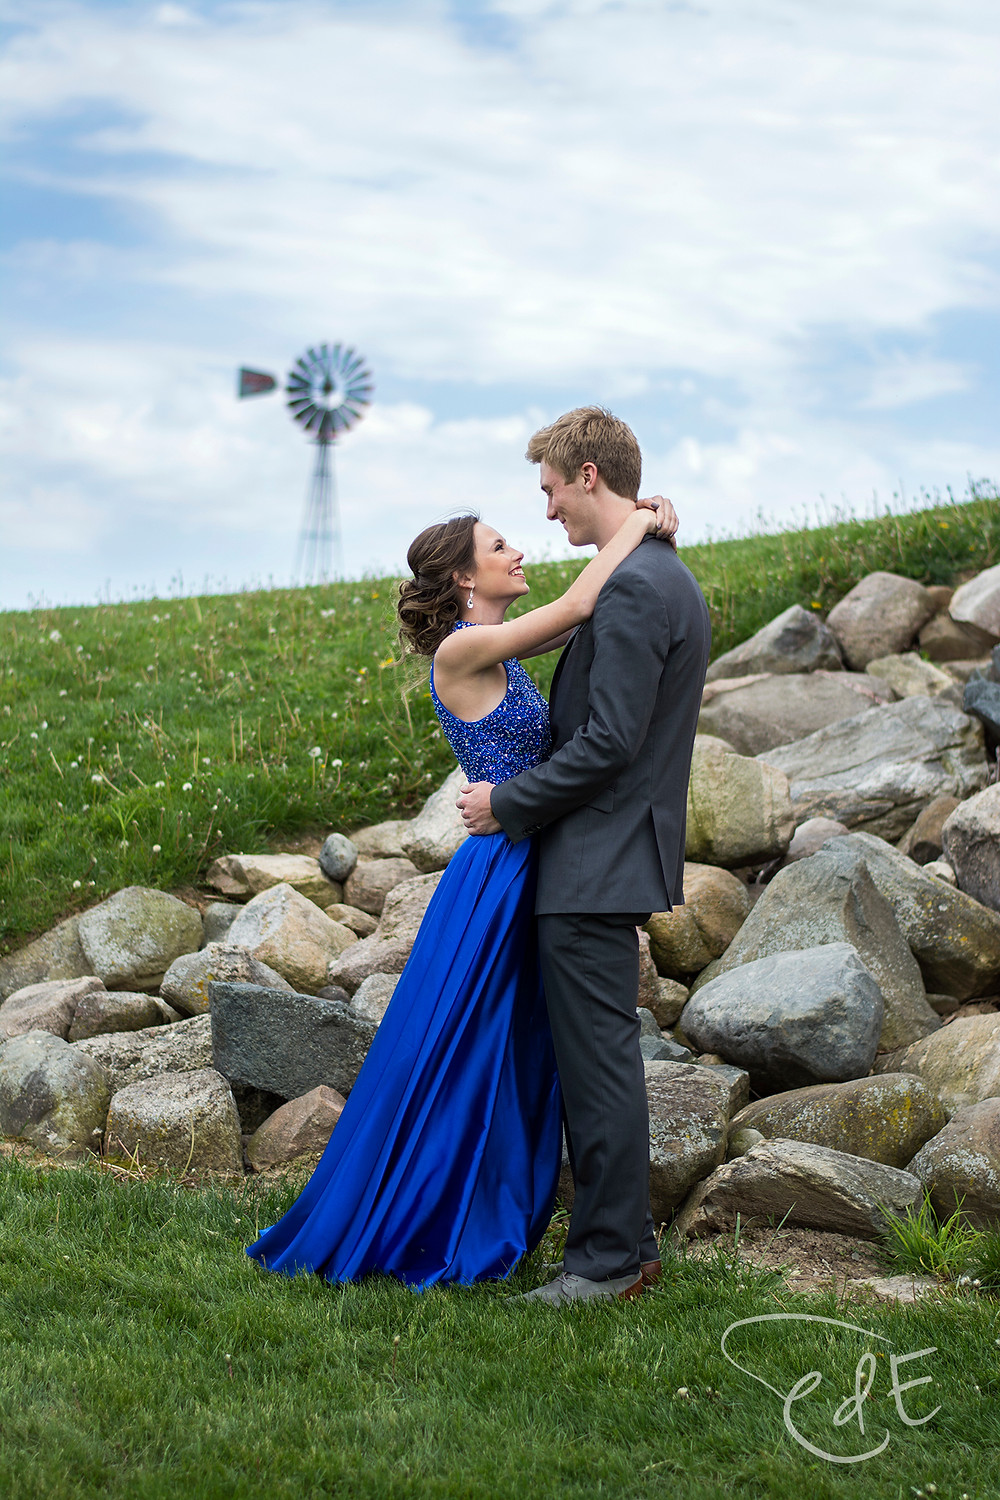 Prom couple at Salomon Farm with blue sky and windmill